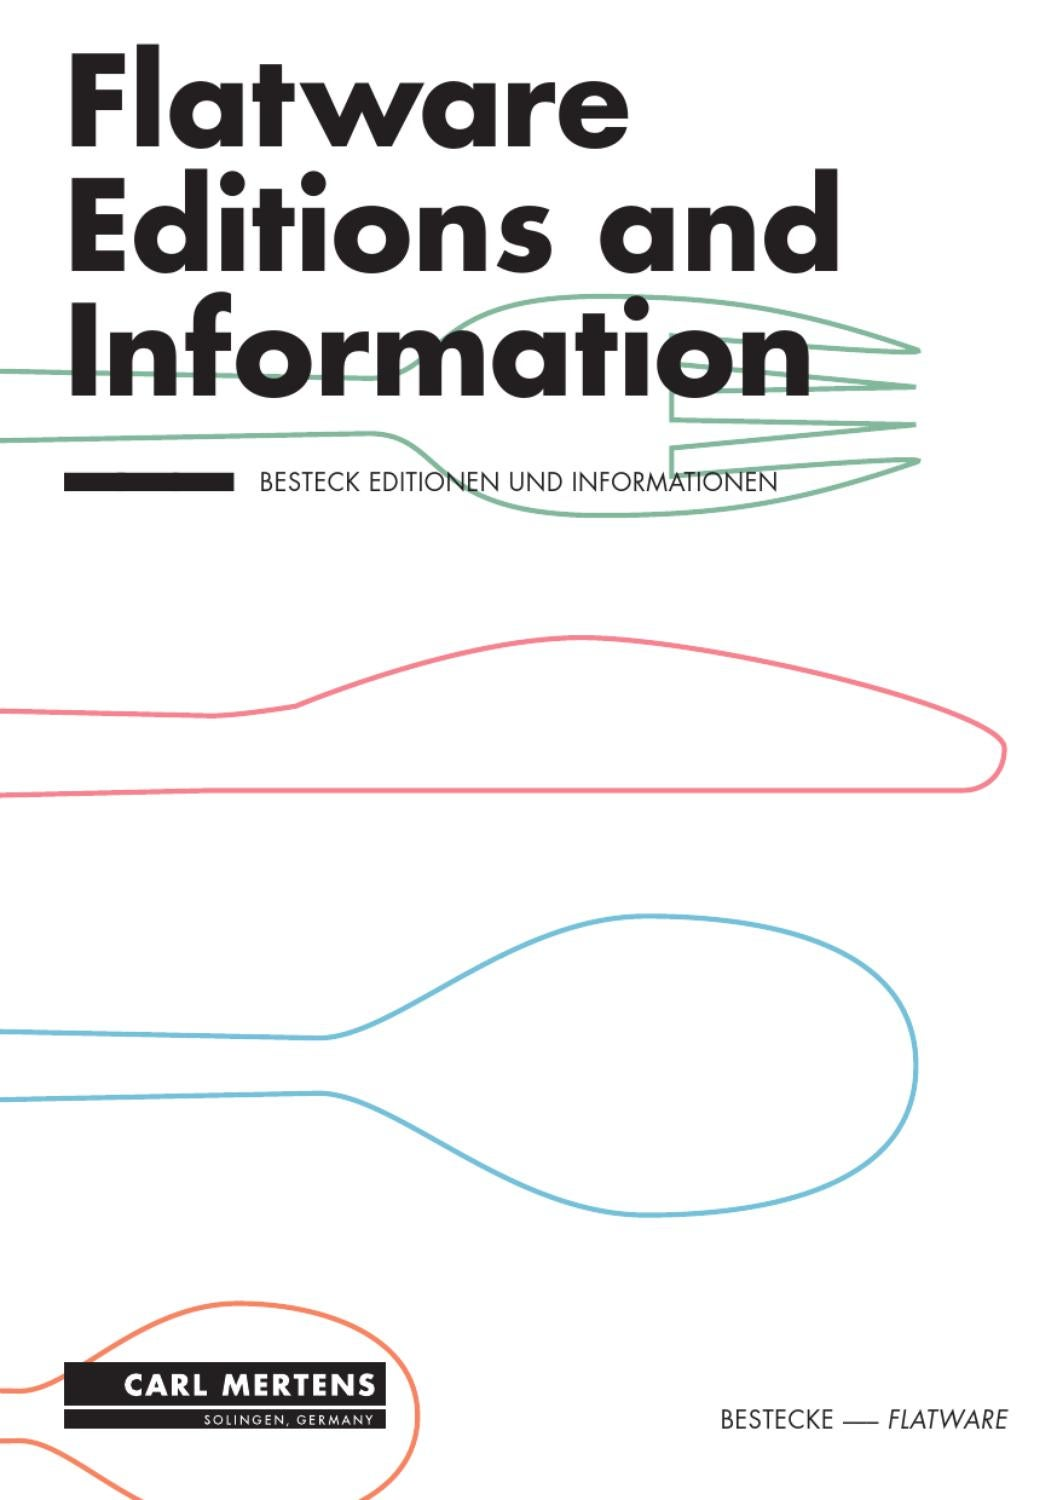 certificate of guarantee by carl mertens by carl mertens international gmbh issuu. Black Bedroom Furniture Sets. Home Design Ideas